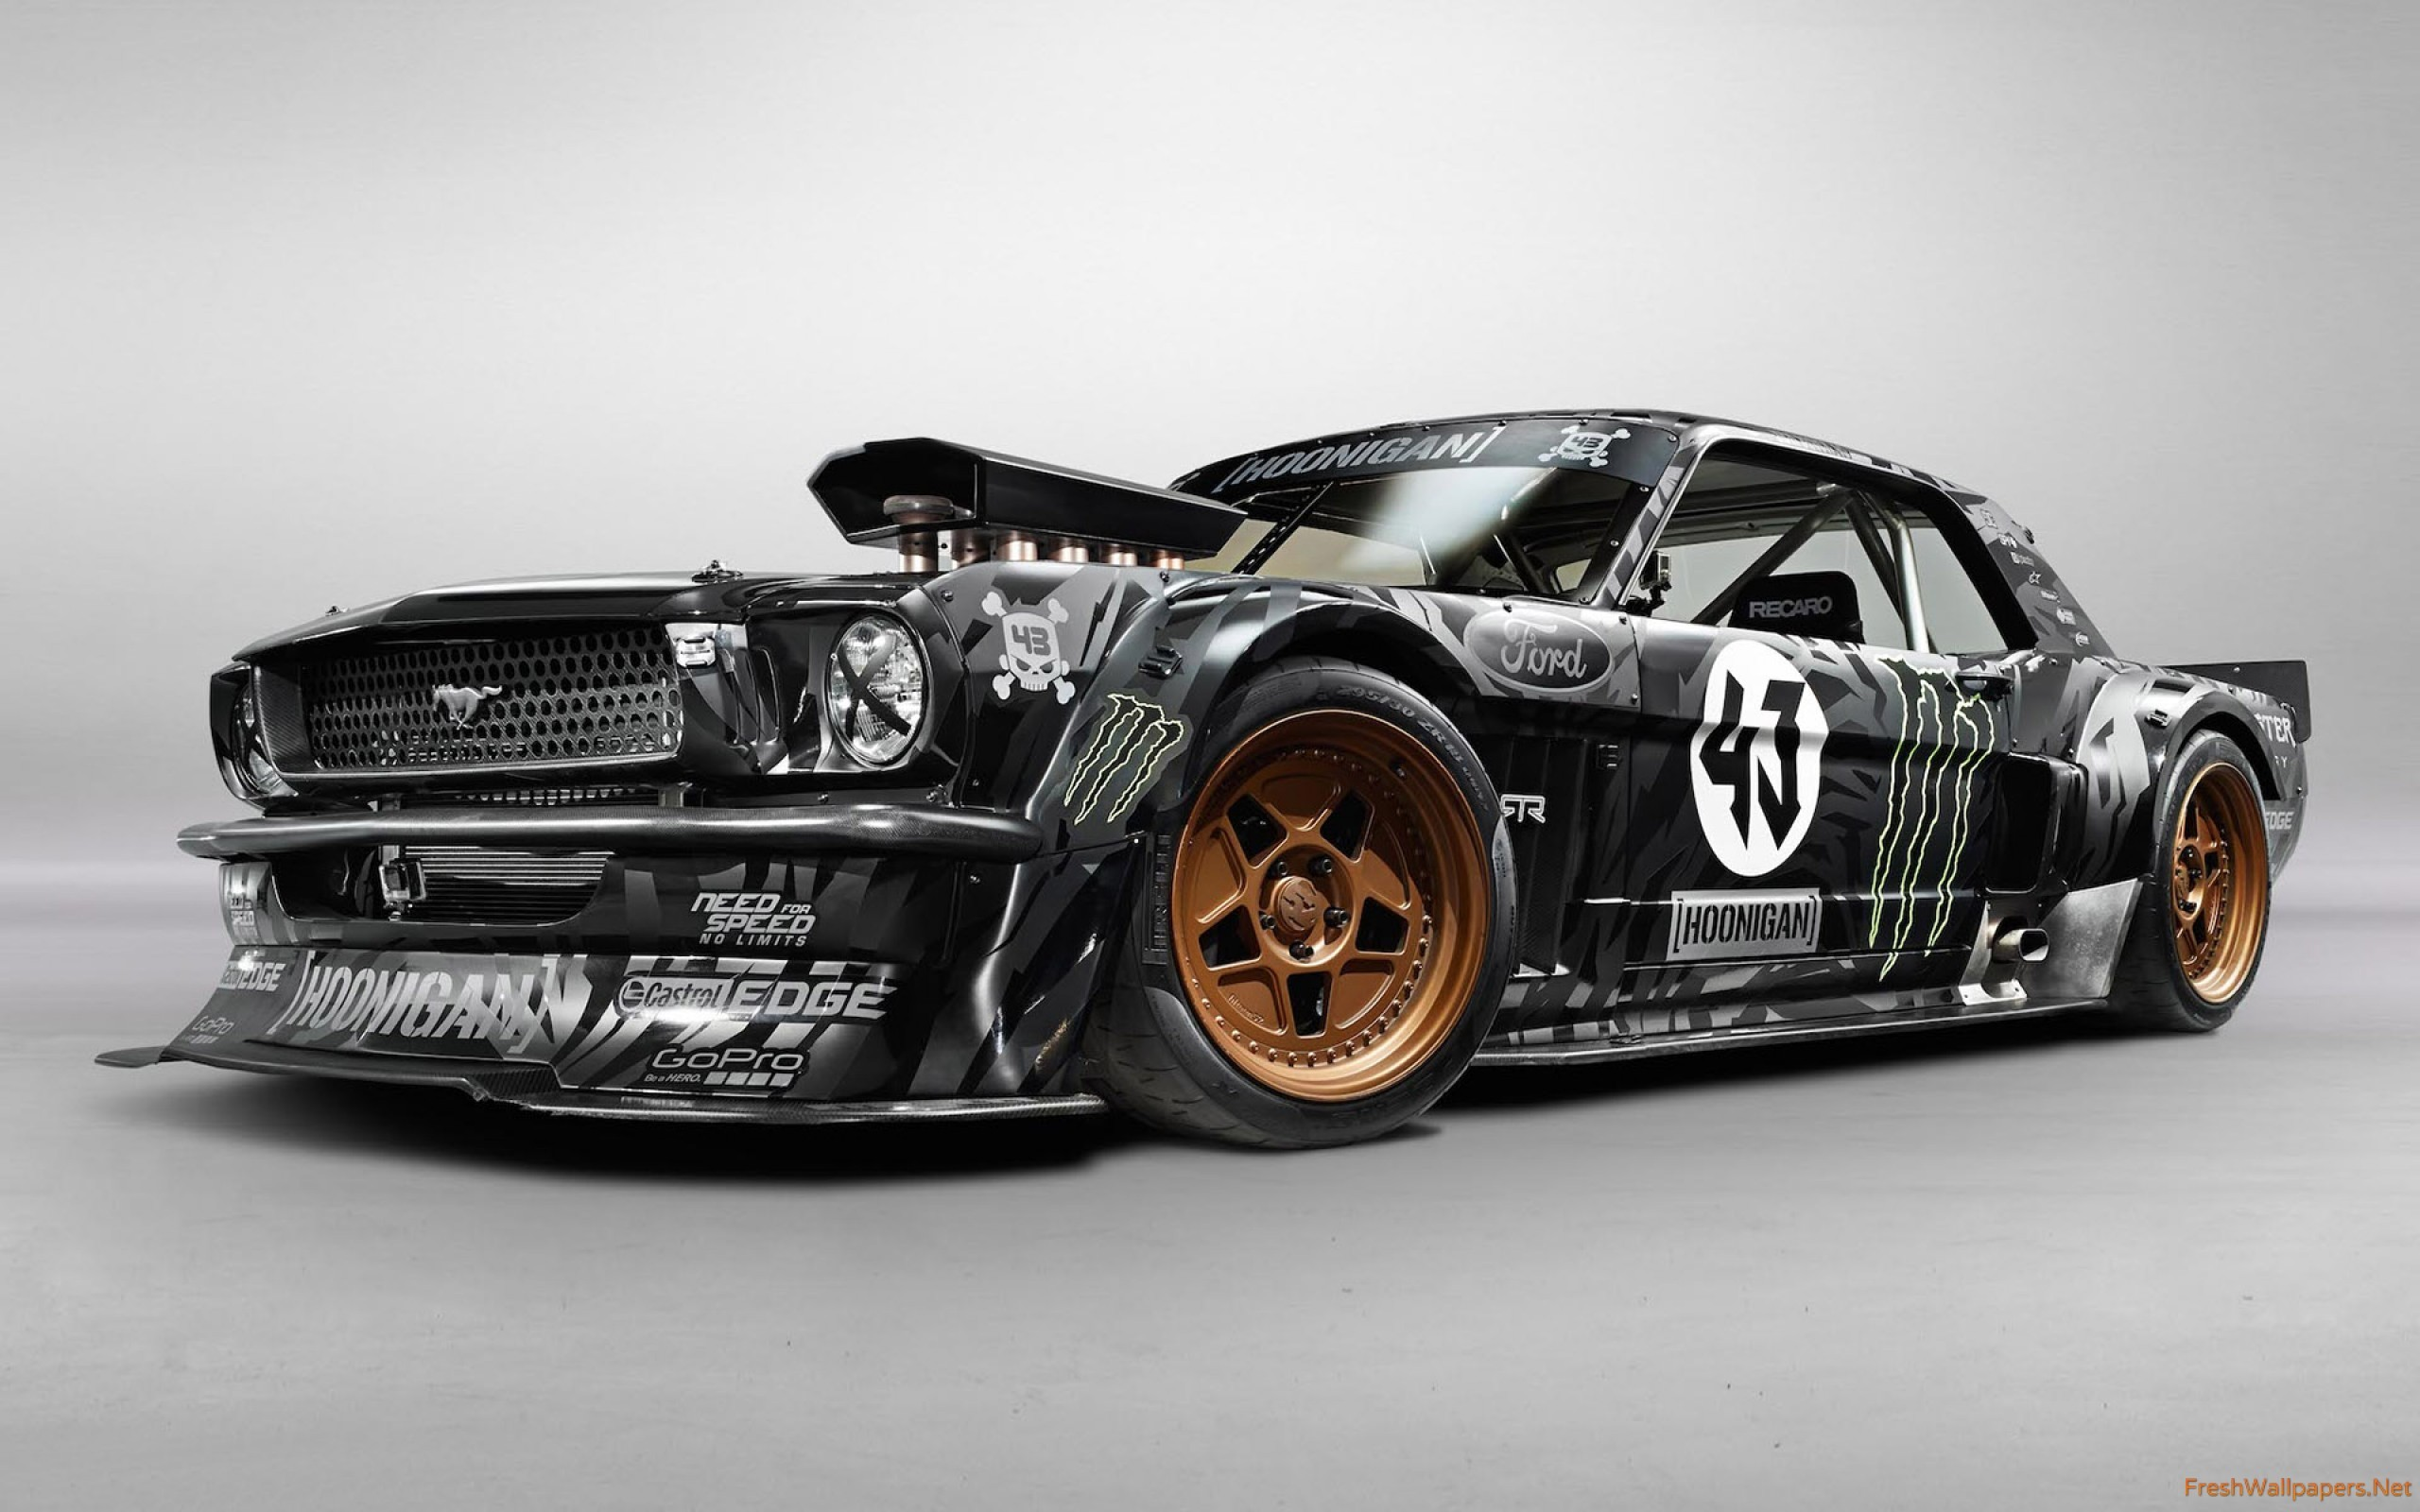 2560x1600 1965-ken-block-ford-mustang-hoonicorn-rtr Wallpaper: